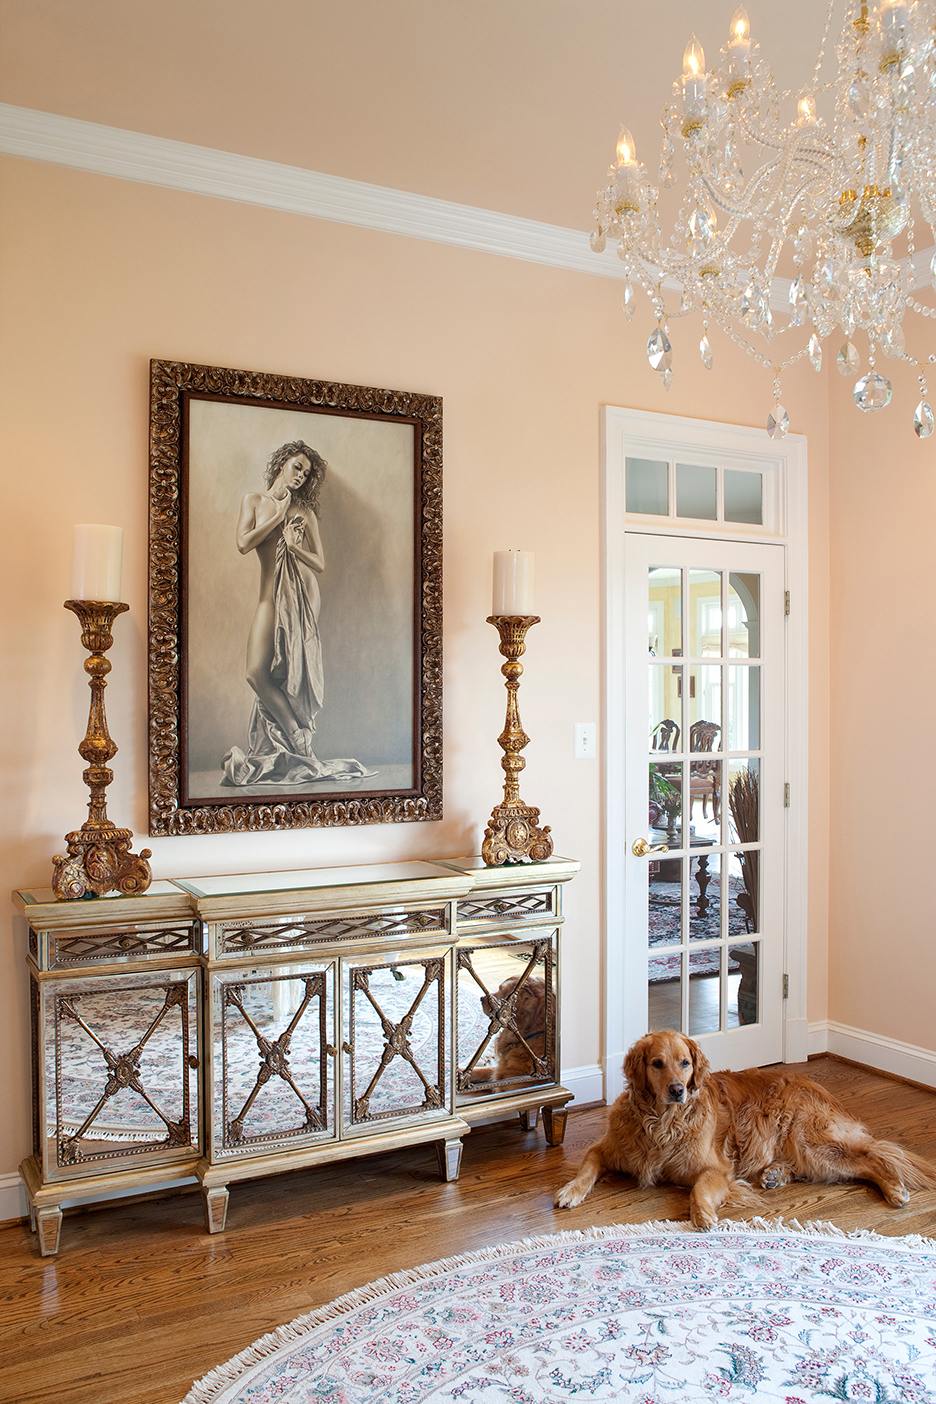 Interior Design by Janice Lachman | Art by Merritt Gallery & Renaissance Fine Arts